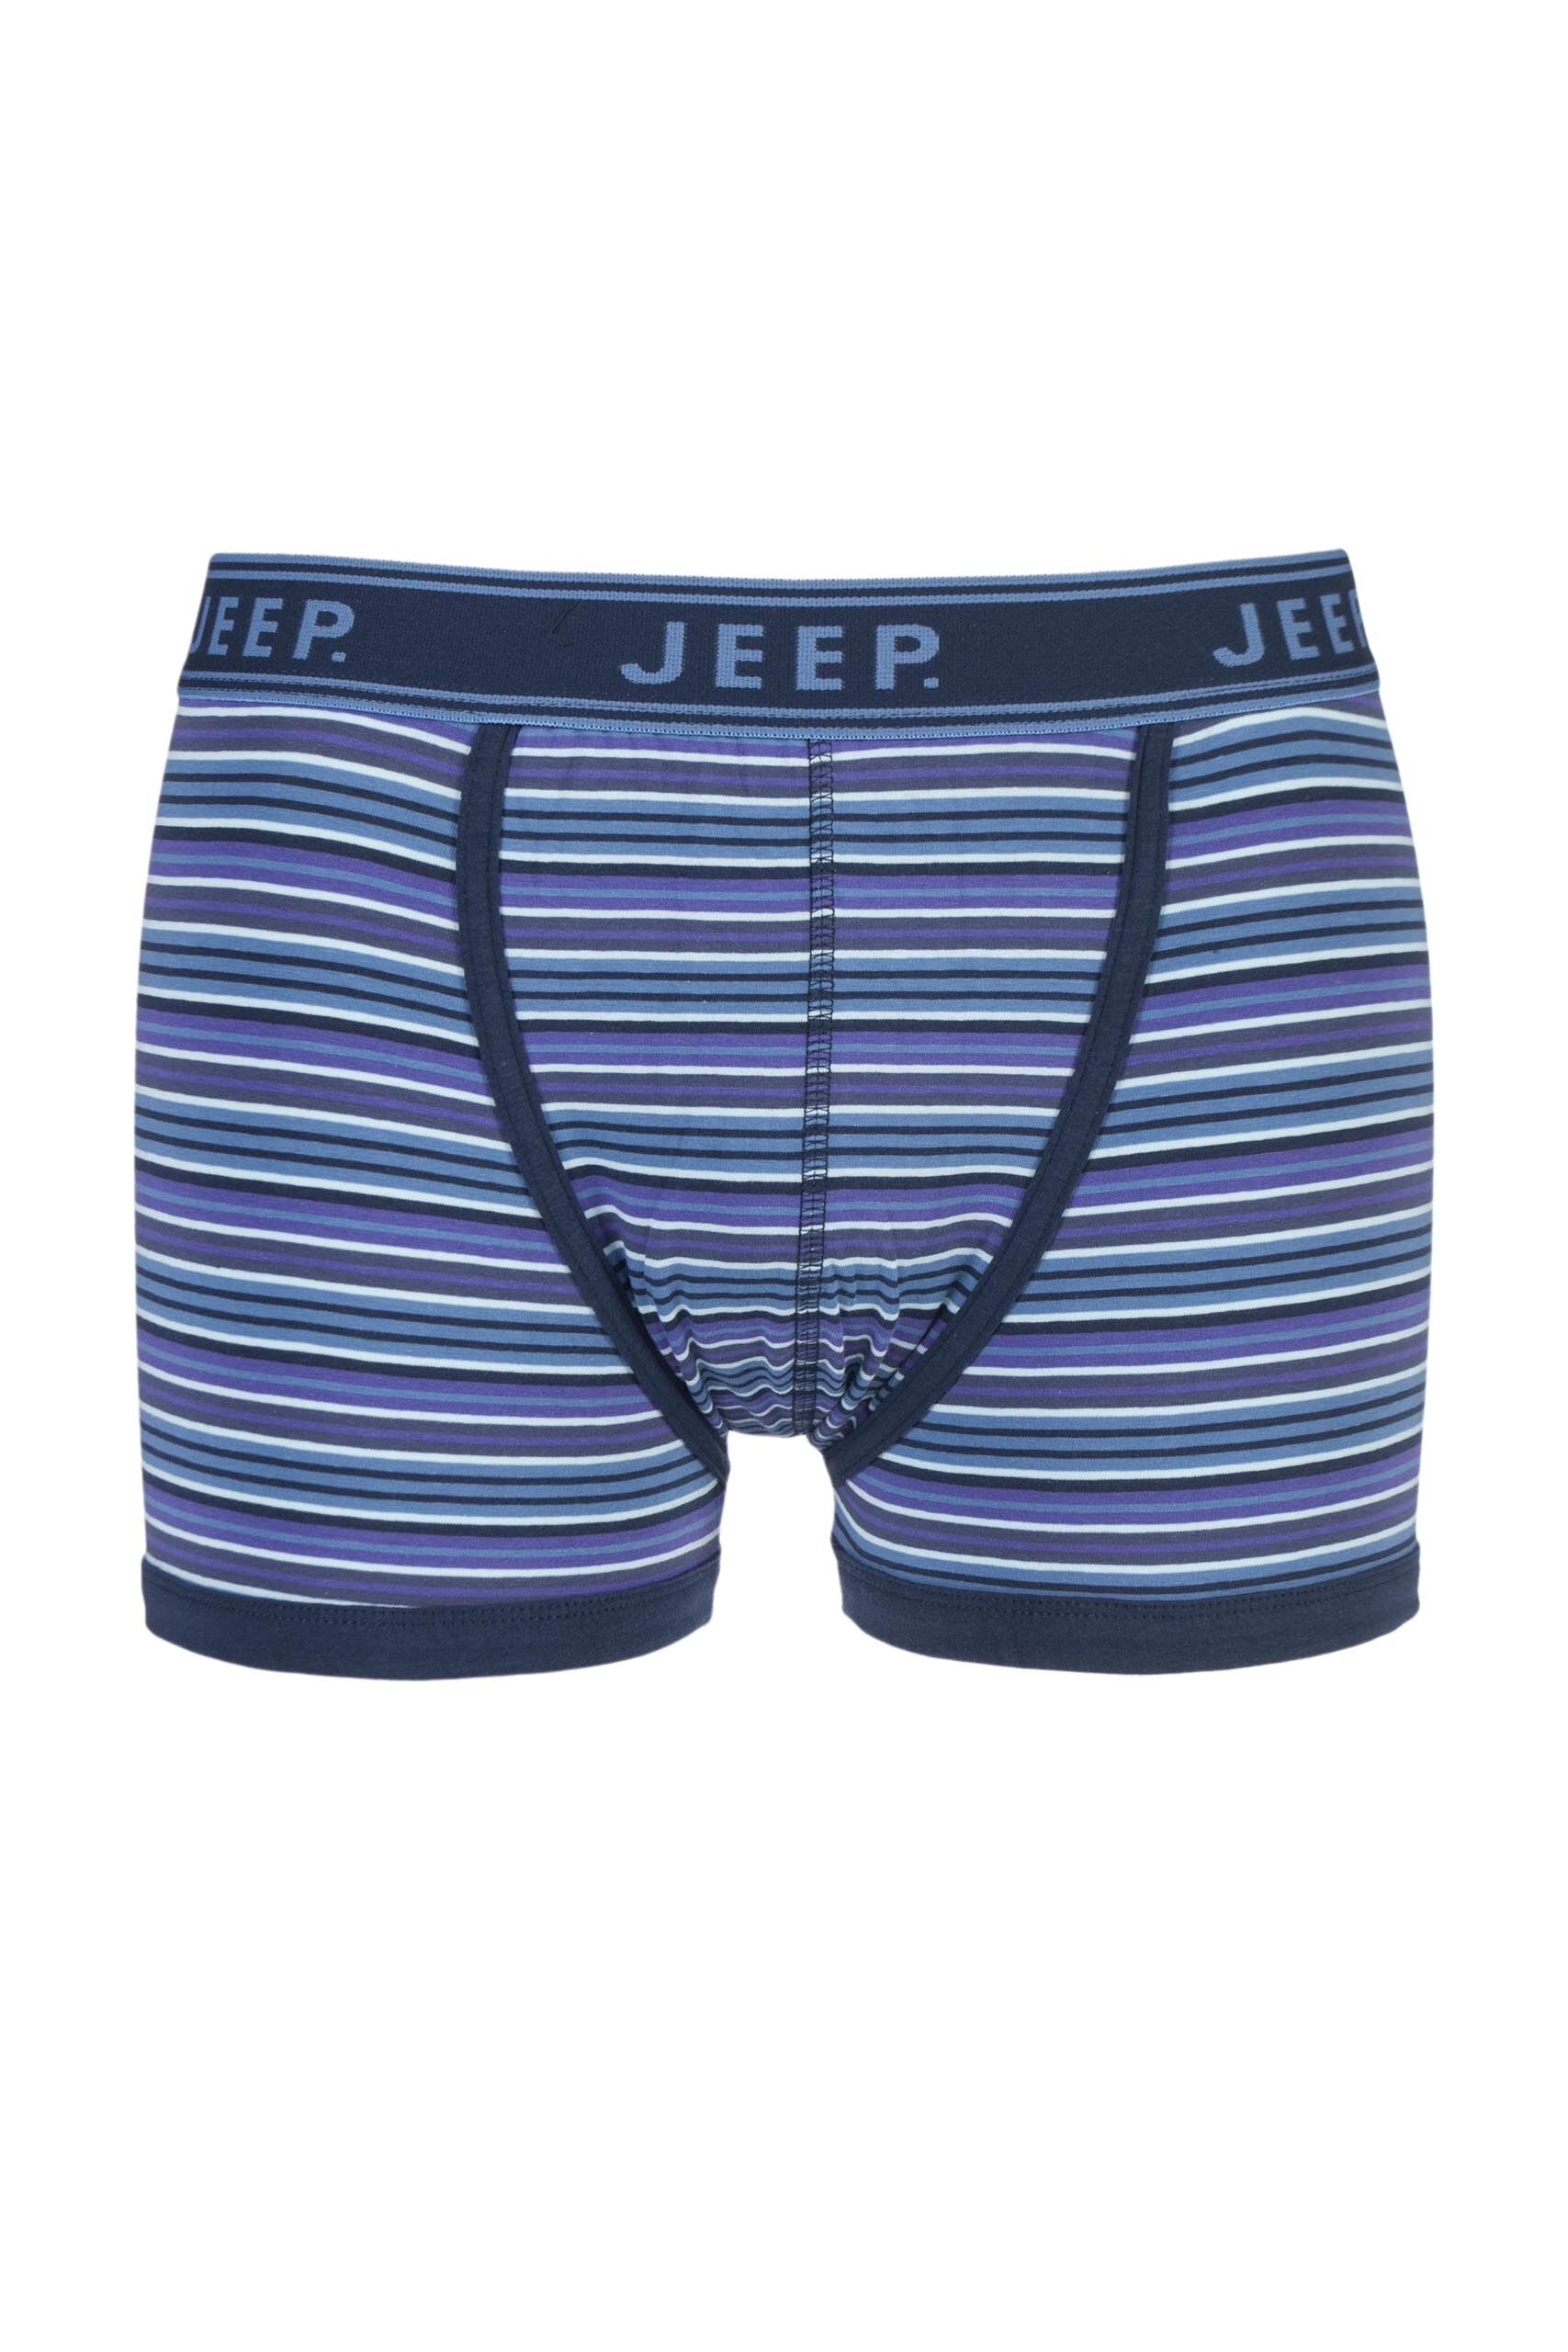 Image of 1 Pack Blue Spirit Cotton Fine Stripe Trunks In Blue Men's Extra Large - Jeep